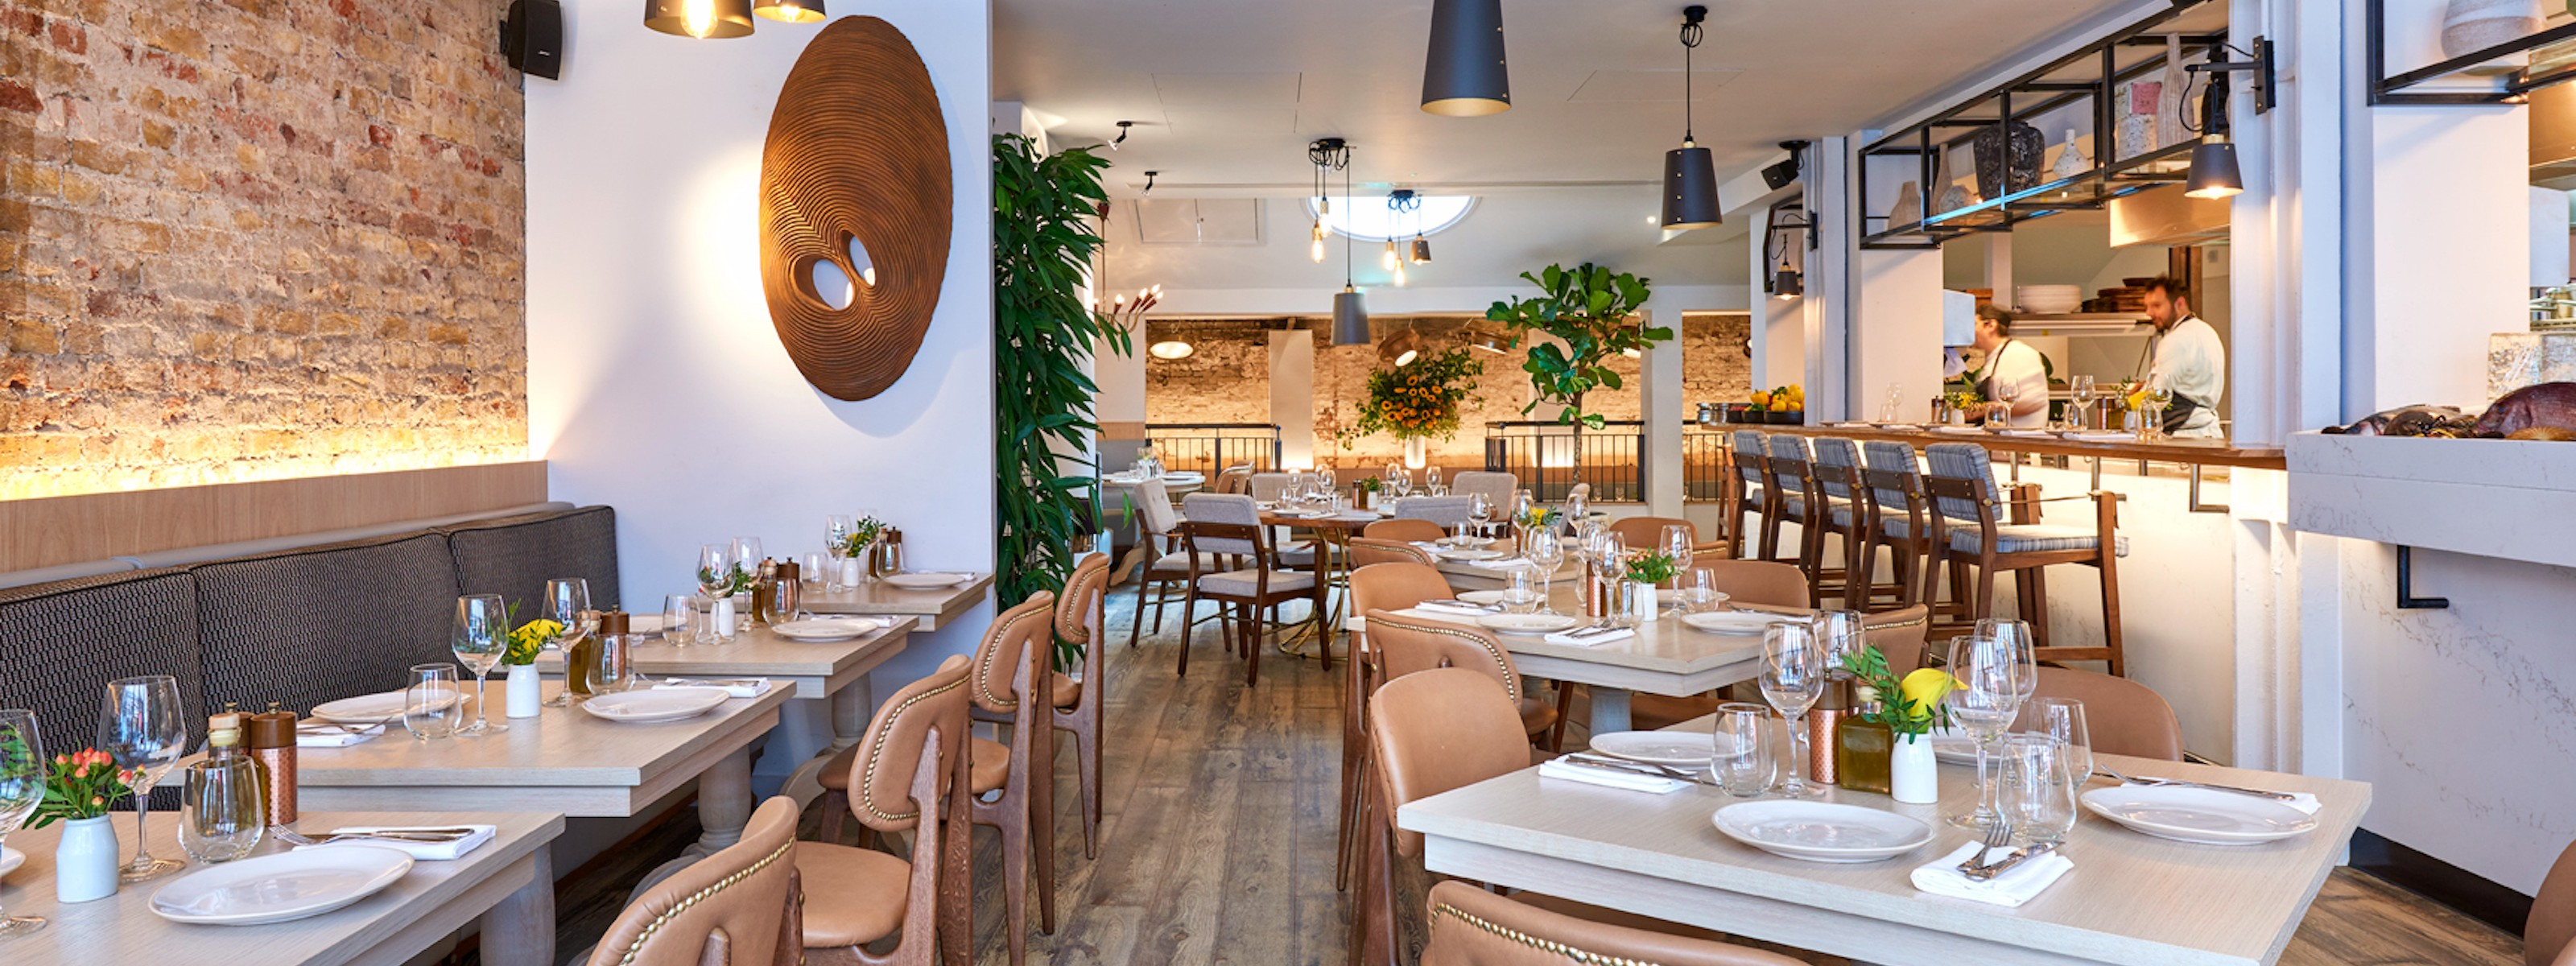 Where To Have Your Birthday Dinner London The Infatuation